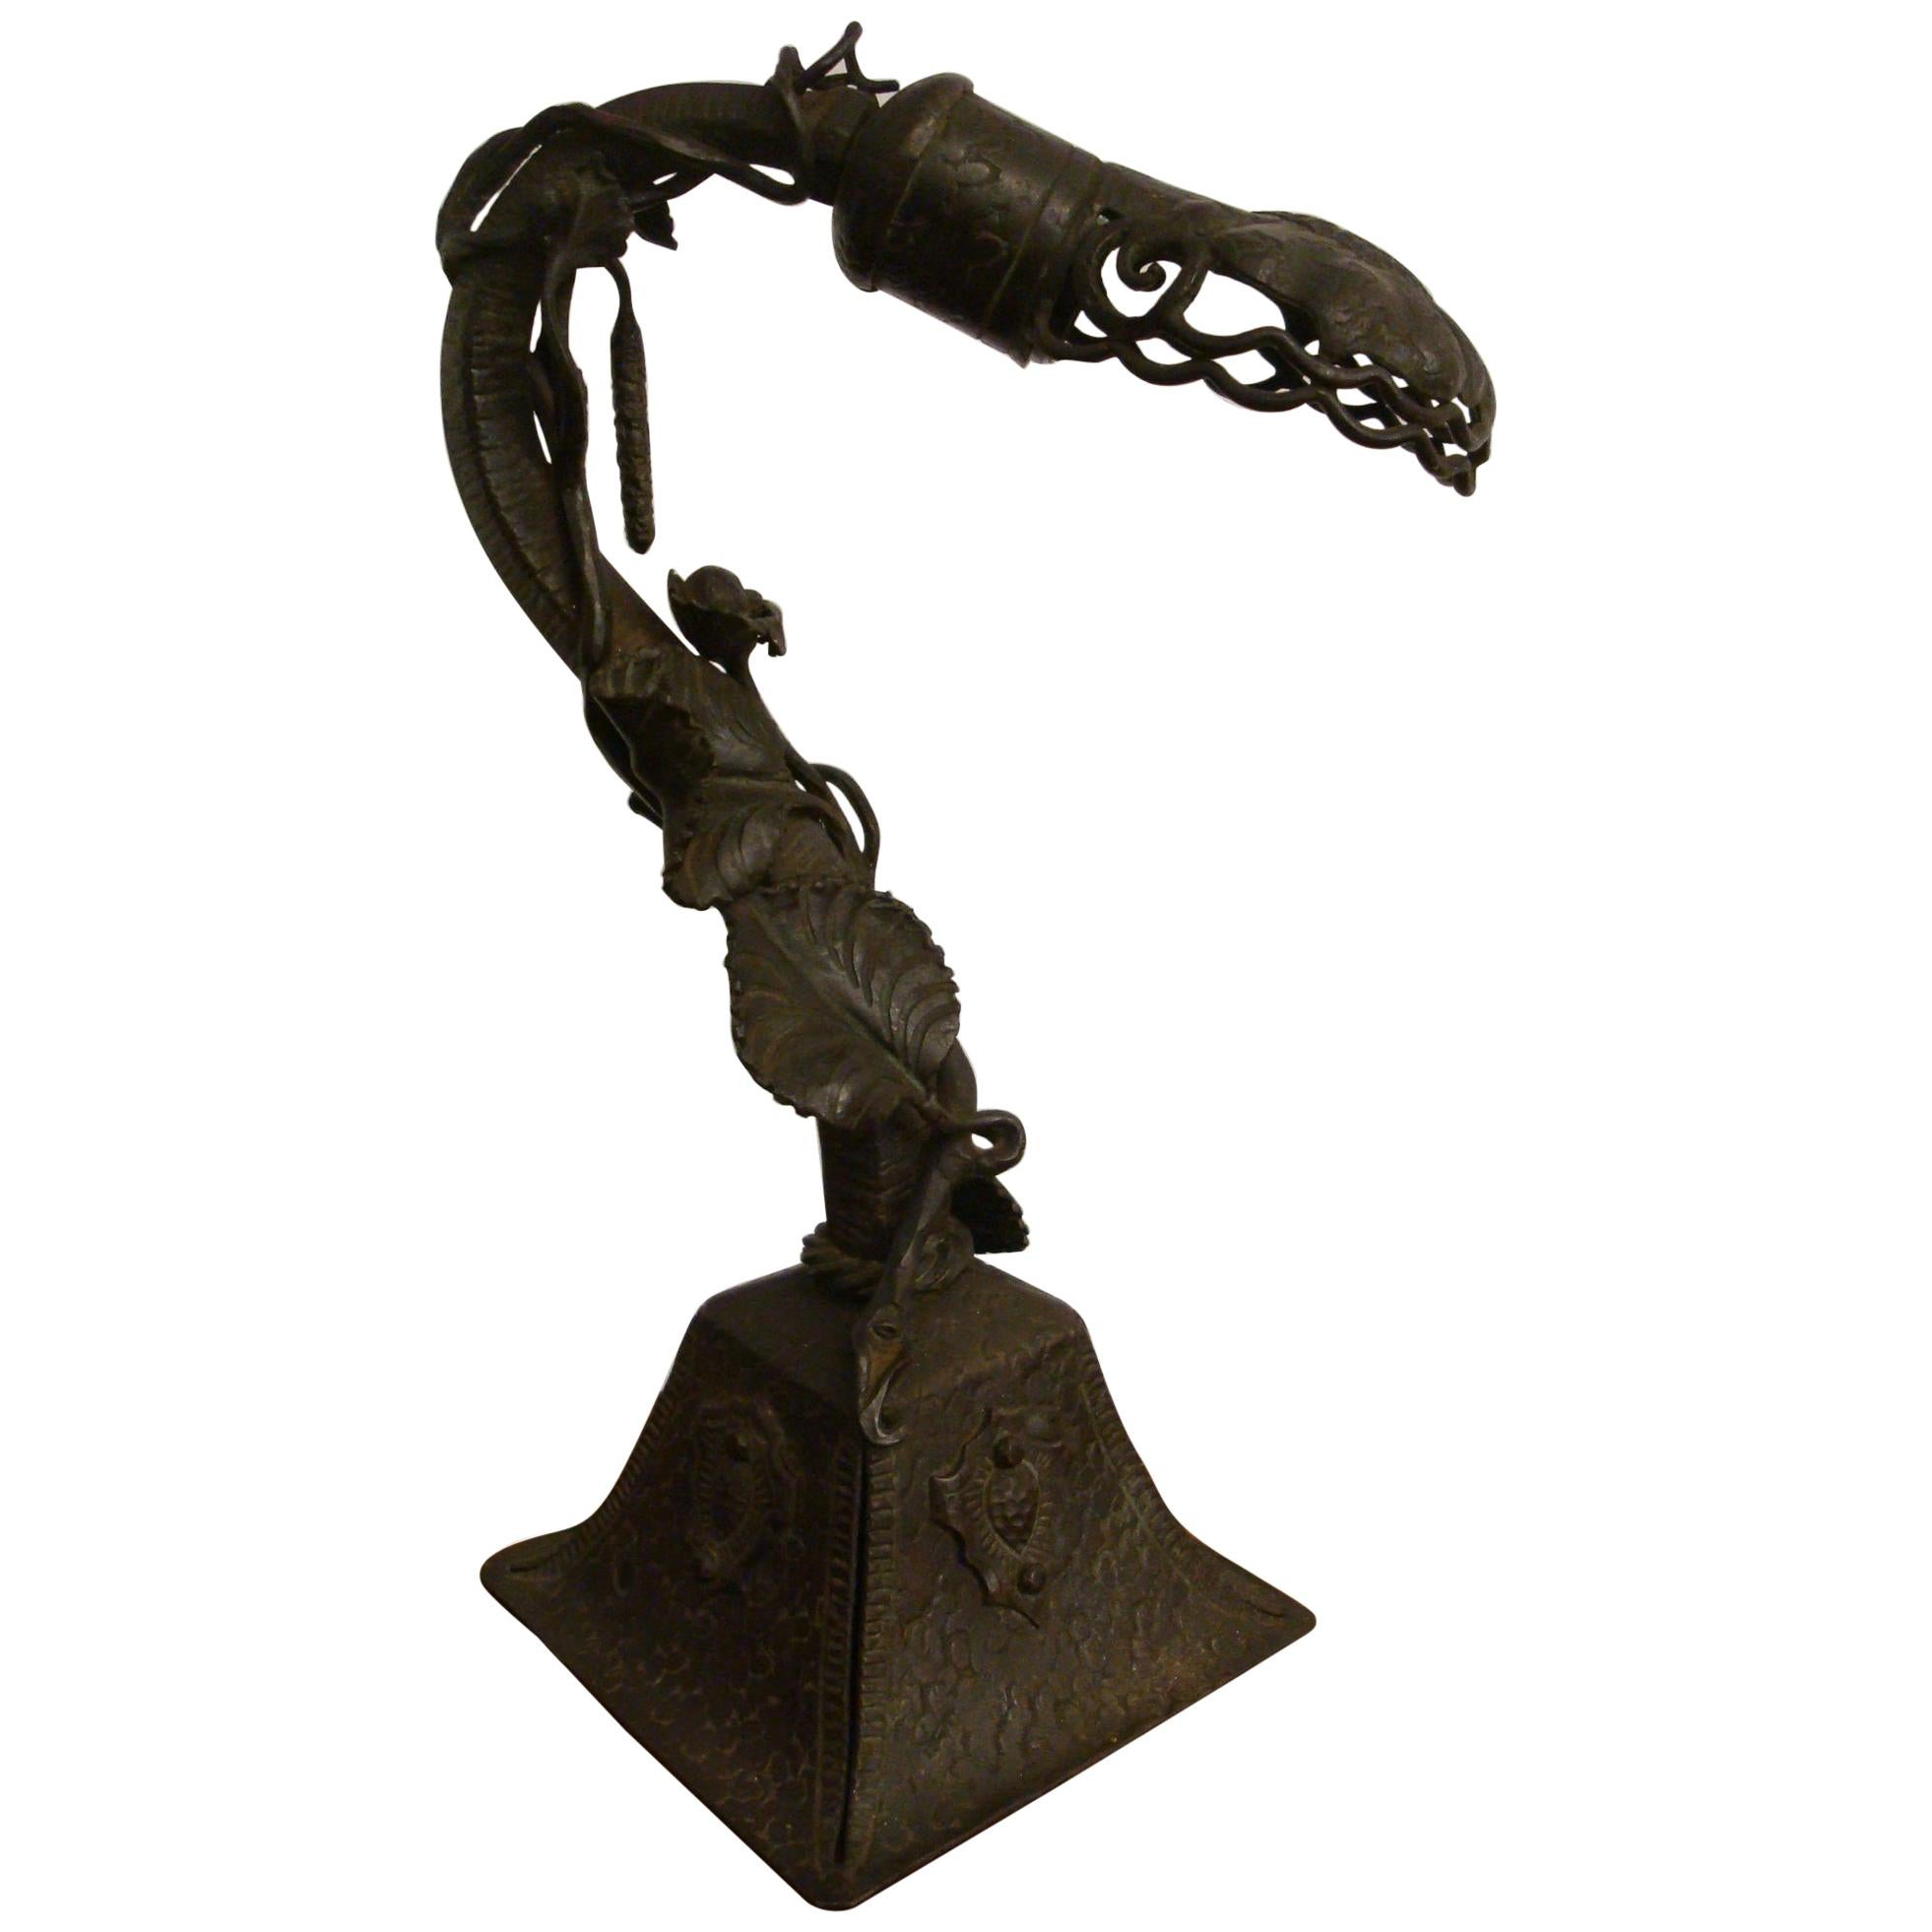 Art Deco Hand Forged Wrought Iron Desk / Table Lamp, France, 1920